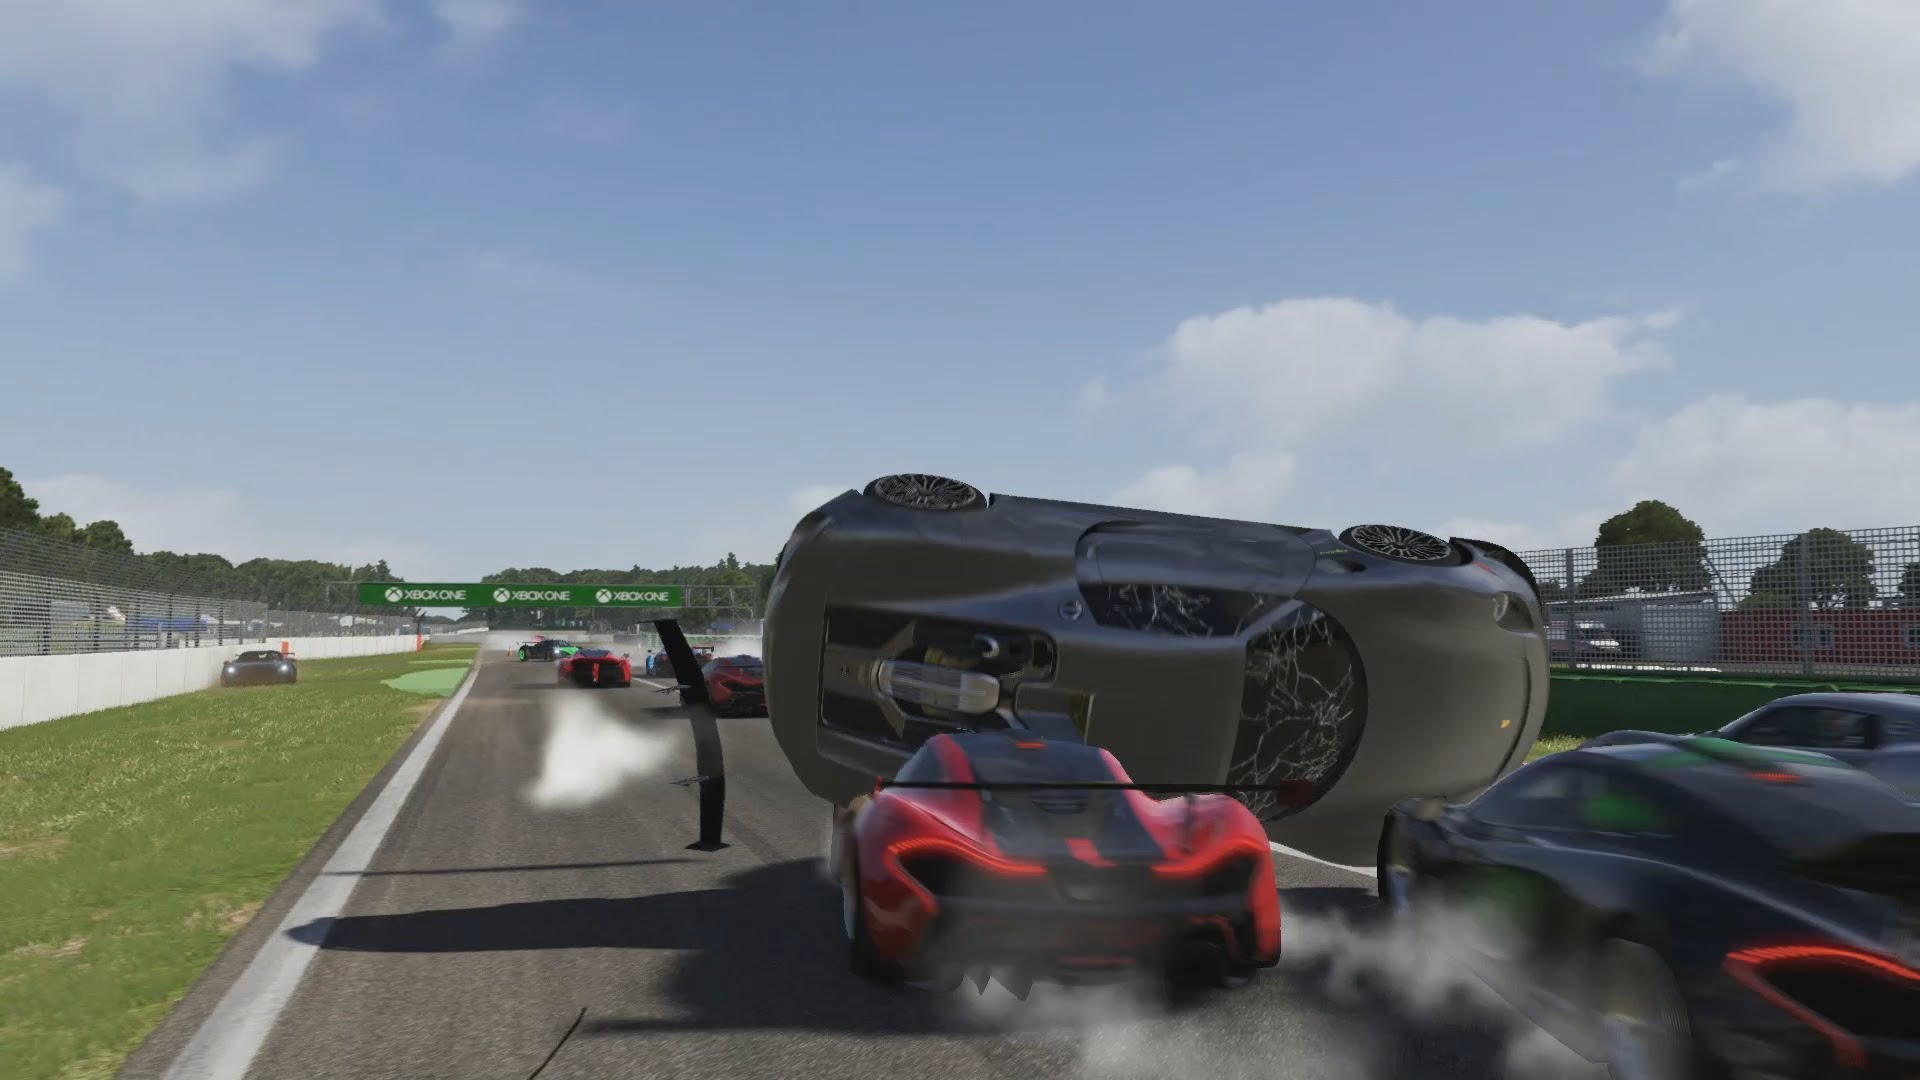 Forza Motorsport 6 New achievement unlocked: Race over in 15 seconds